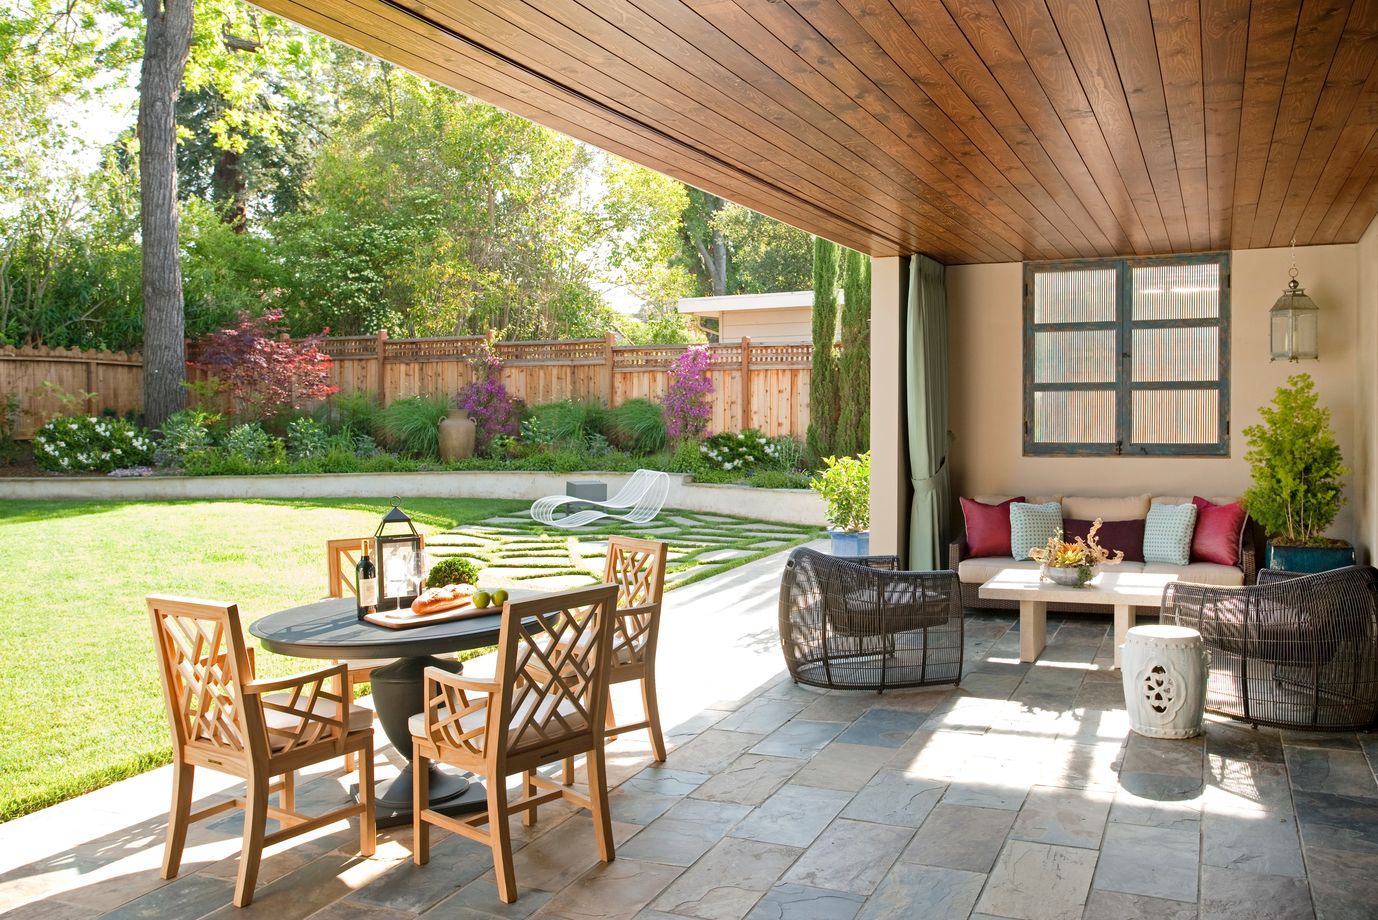 outdoor living 8 ideas to get the most out of your space - Patio Living